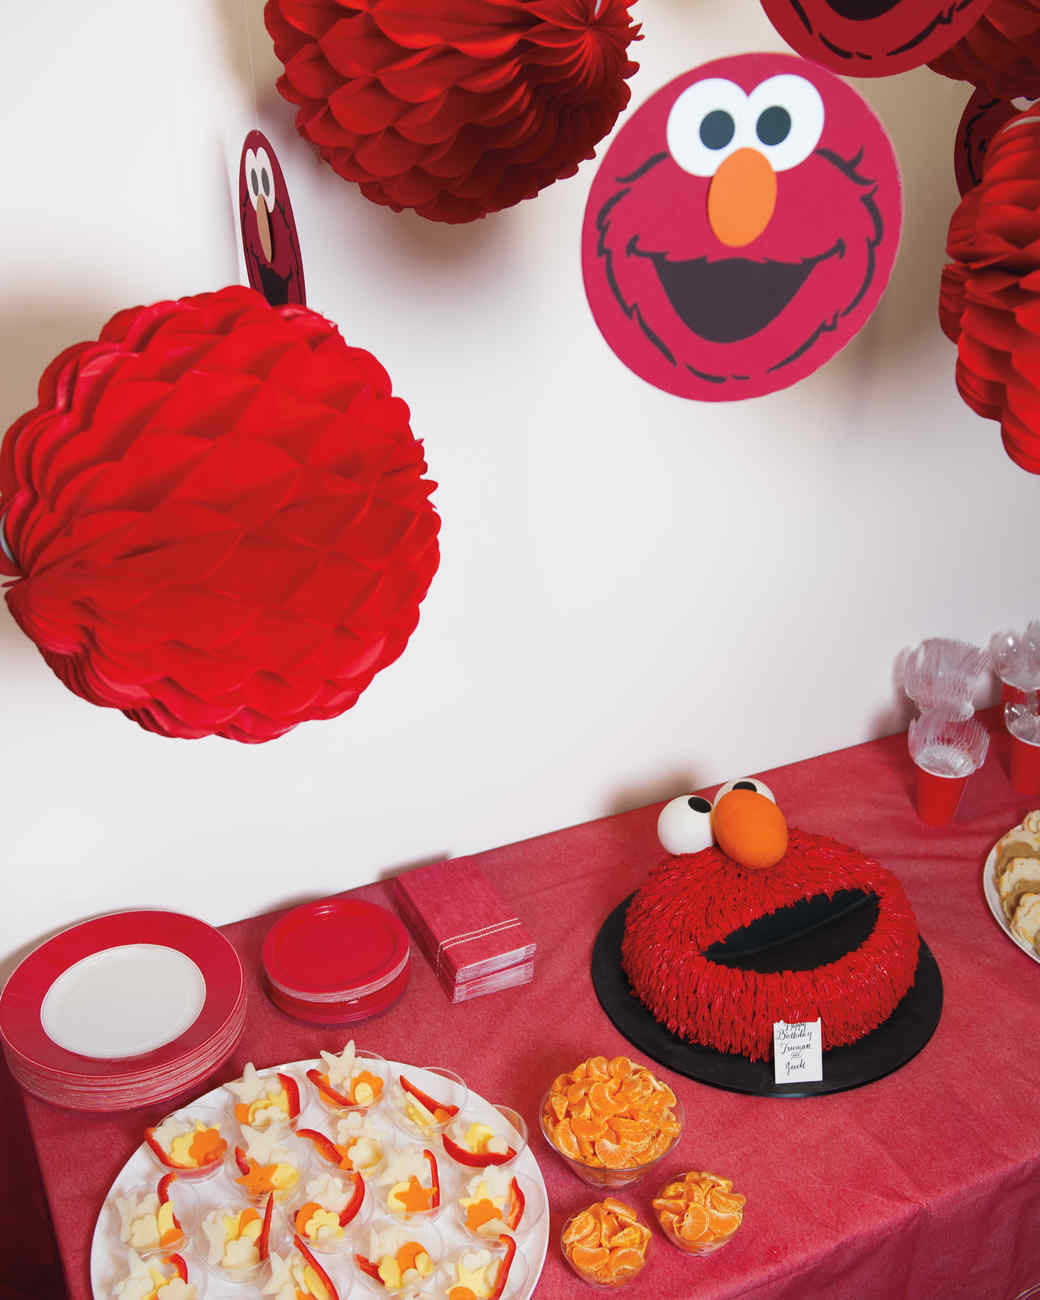 Best ideas about Elmo Birthday Party . Save or Pin Celebrating with Elmo Birthday Party Now.